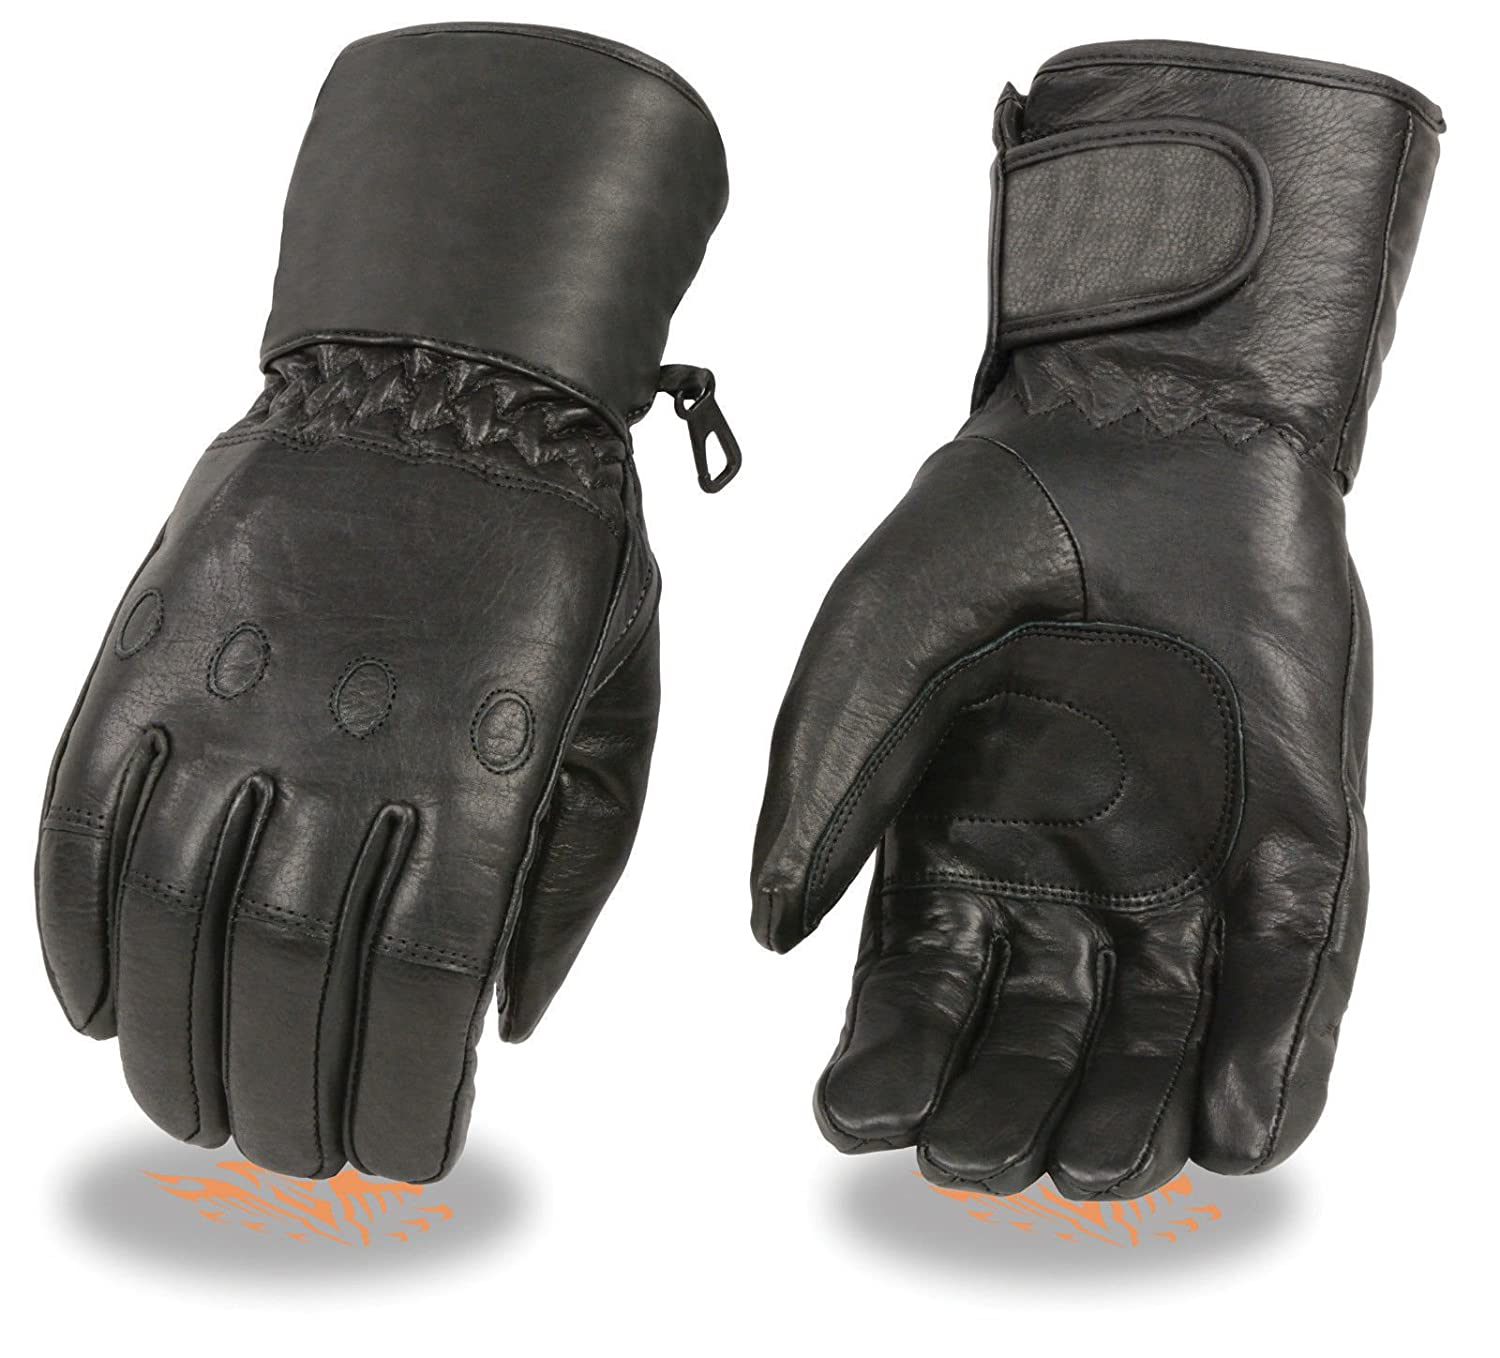 Motorcycle Mens guantlet gloves with cinch wrist Long soft leather waterproof